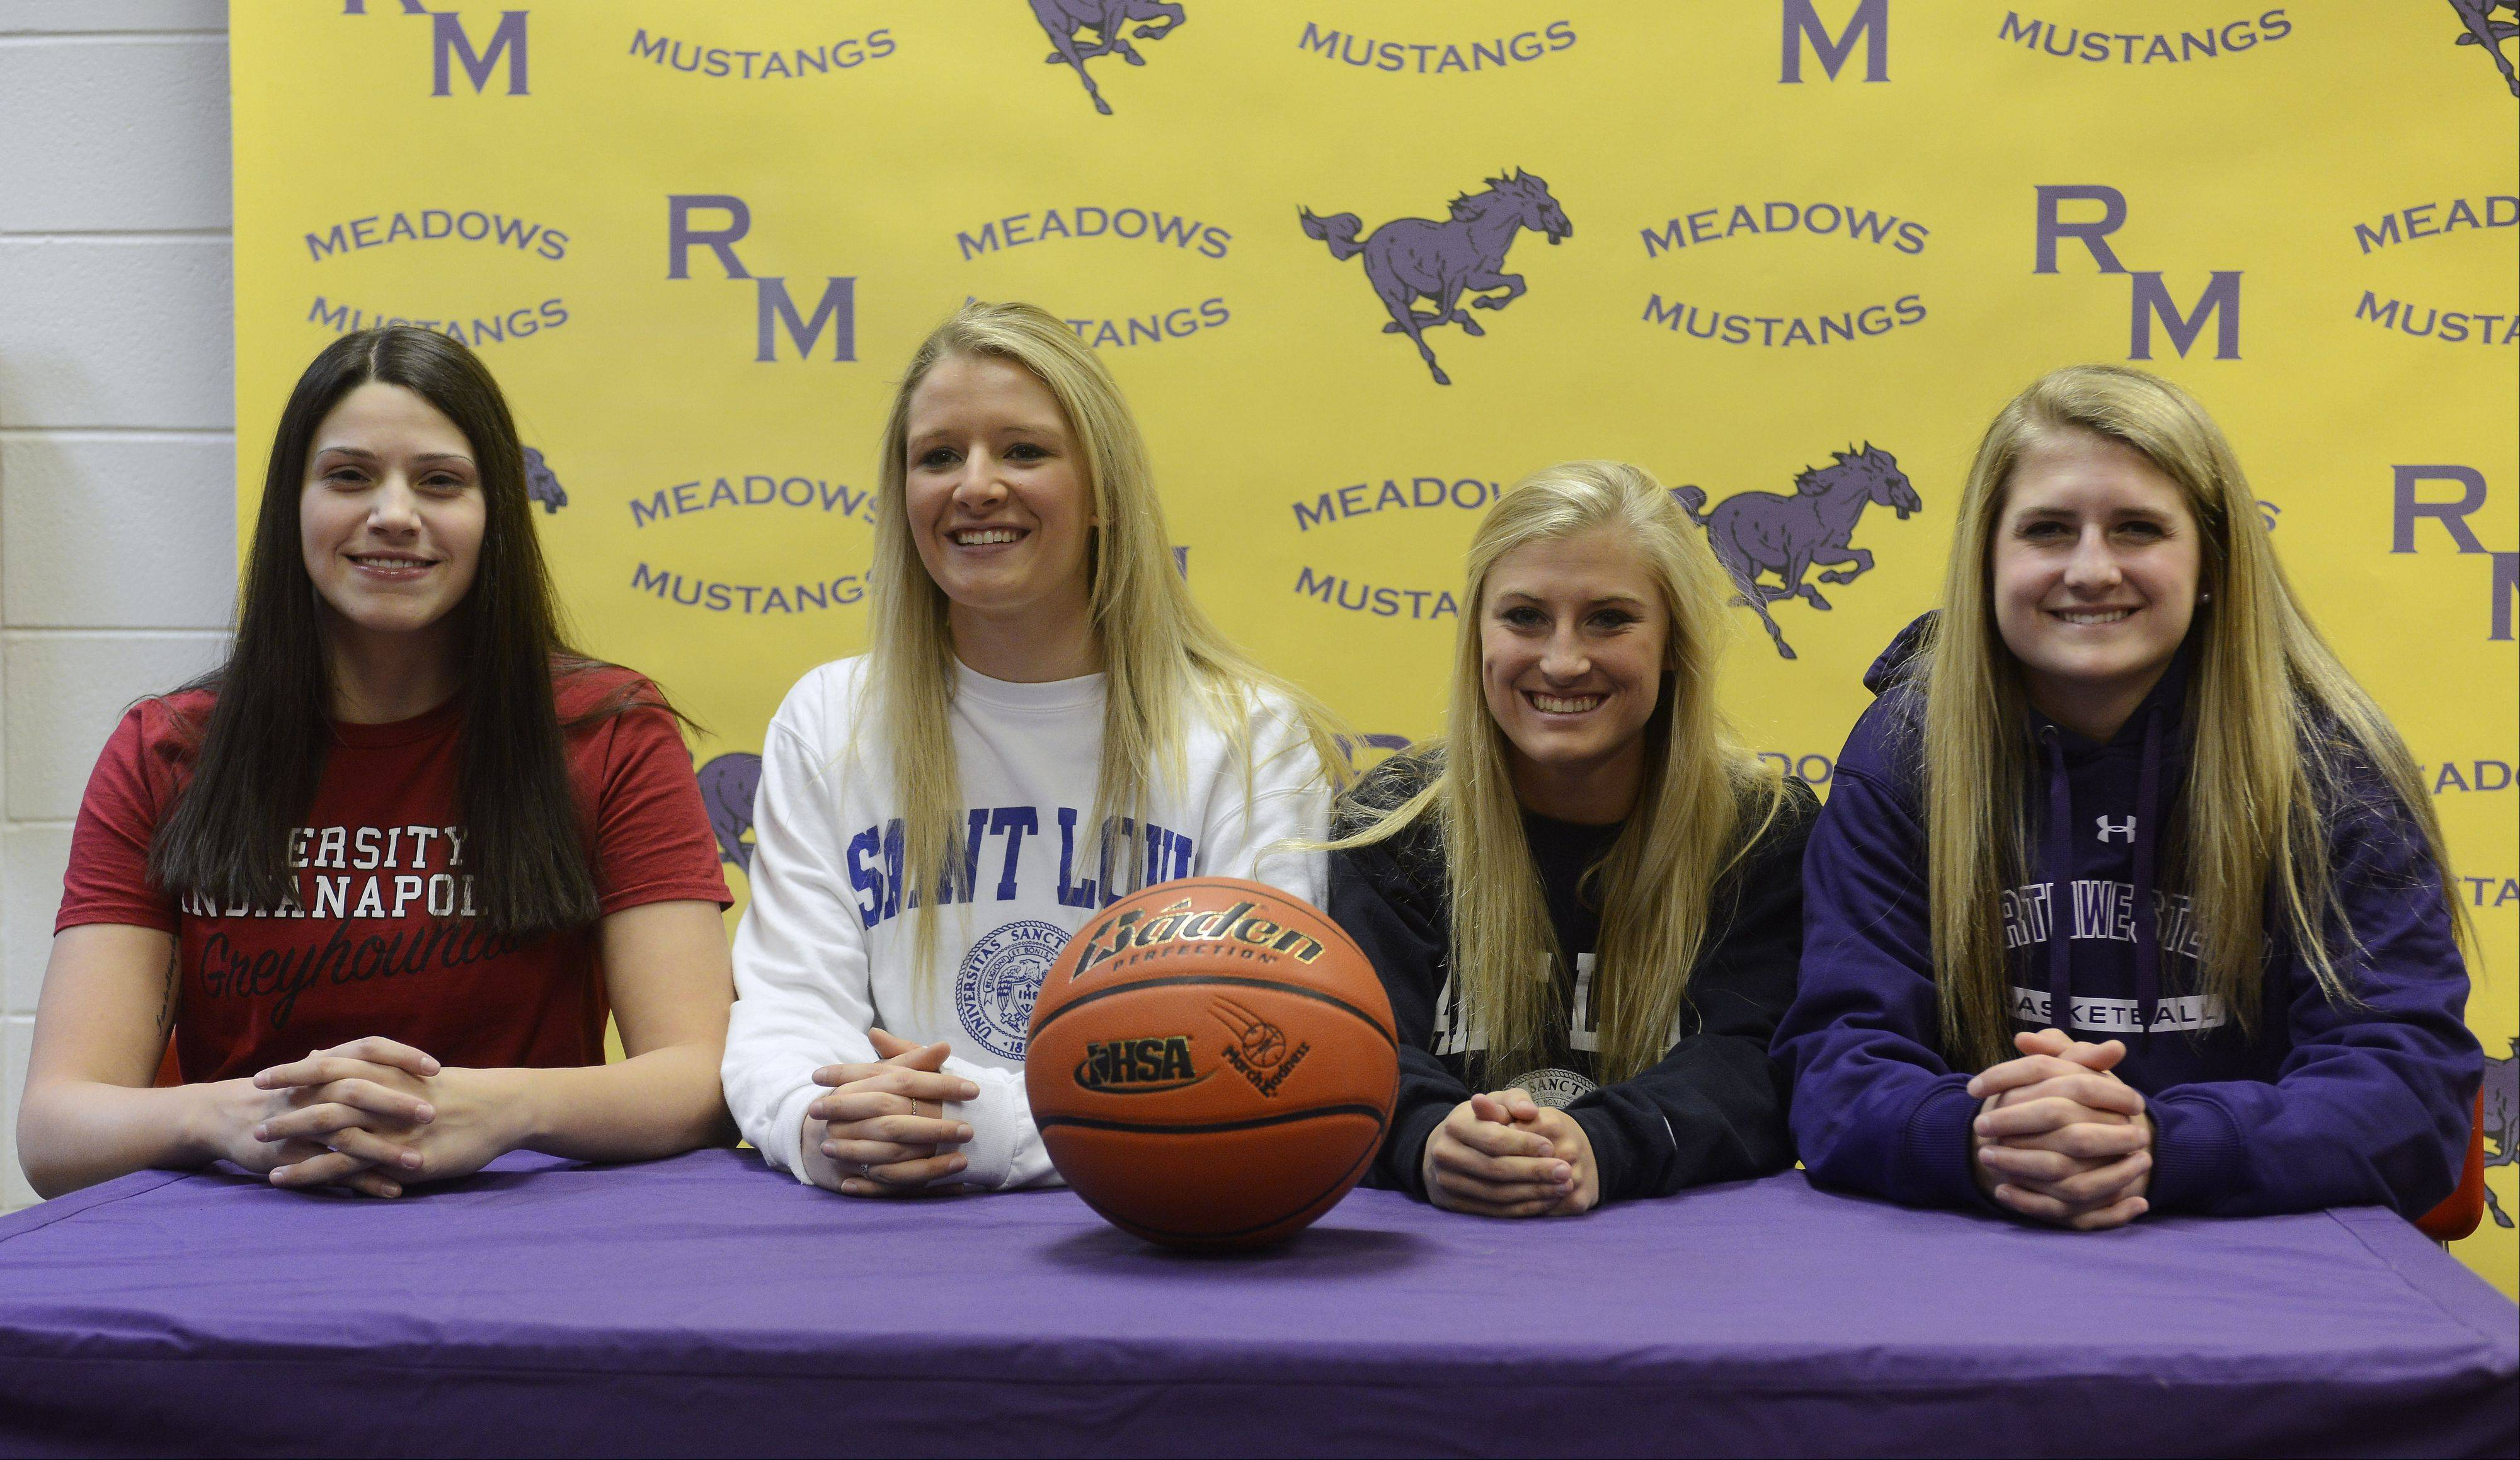 Left to right, Ashley Montanez (University of Indianapolis), Jenny Vliet and Jackie Kemph (St. Louis) and Alexis Glasgow (Northwestern) are seated together during a college letter of intent signing ceremony at Rolling Meadows High School on Wednesday.